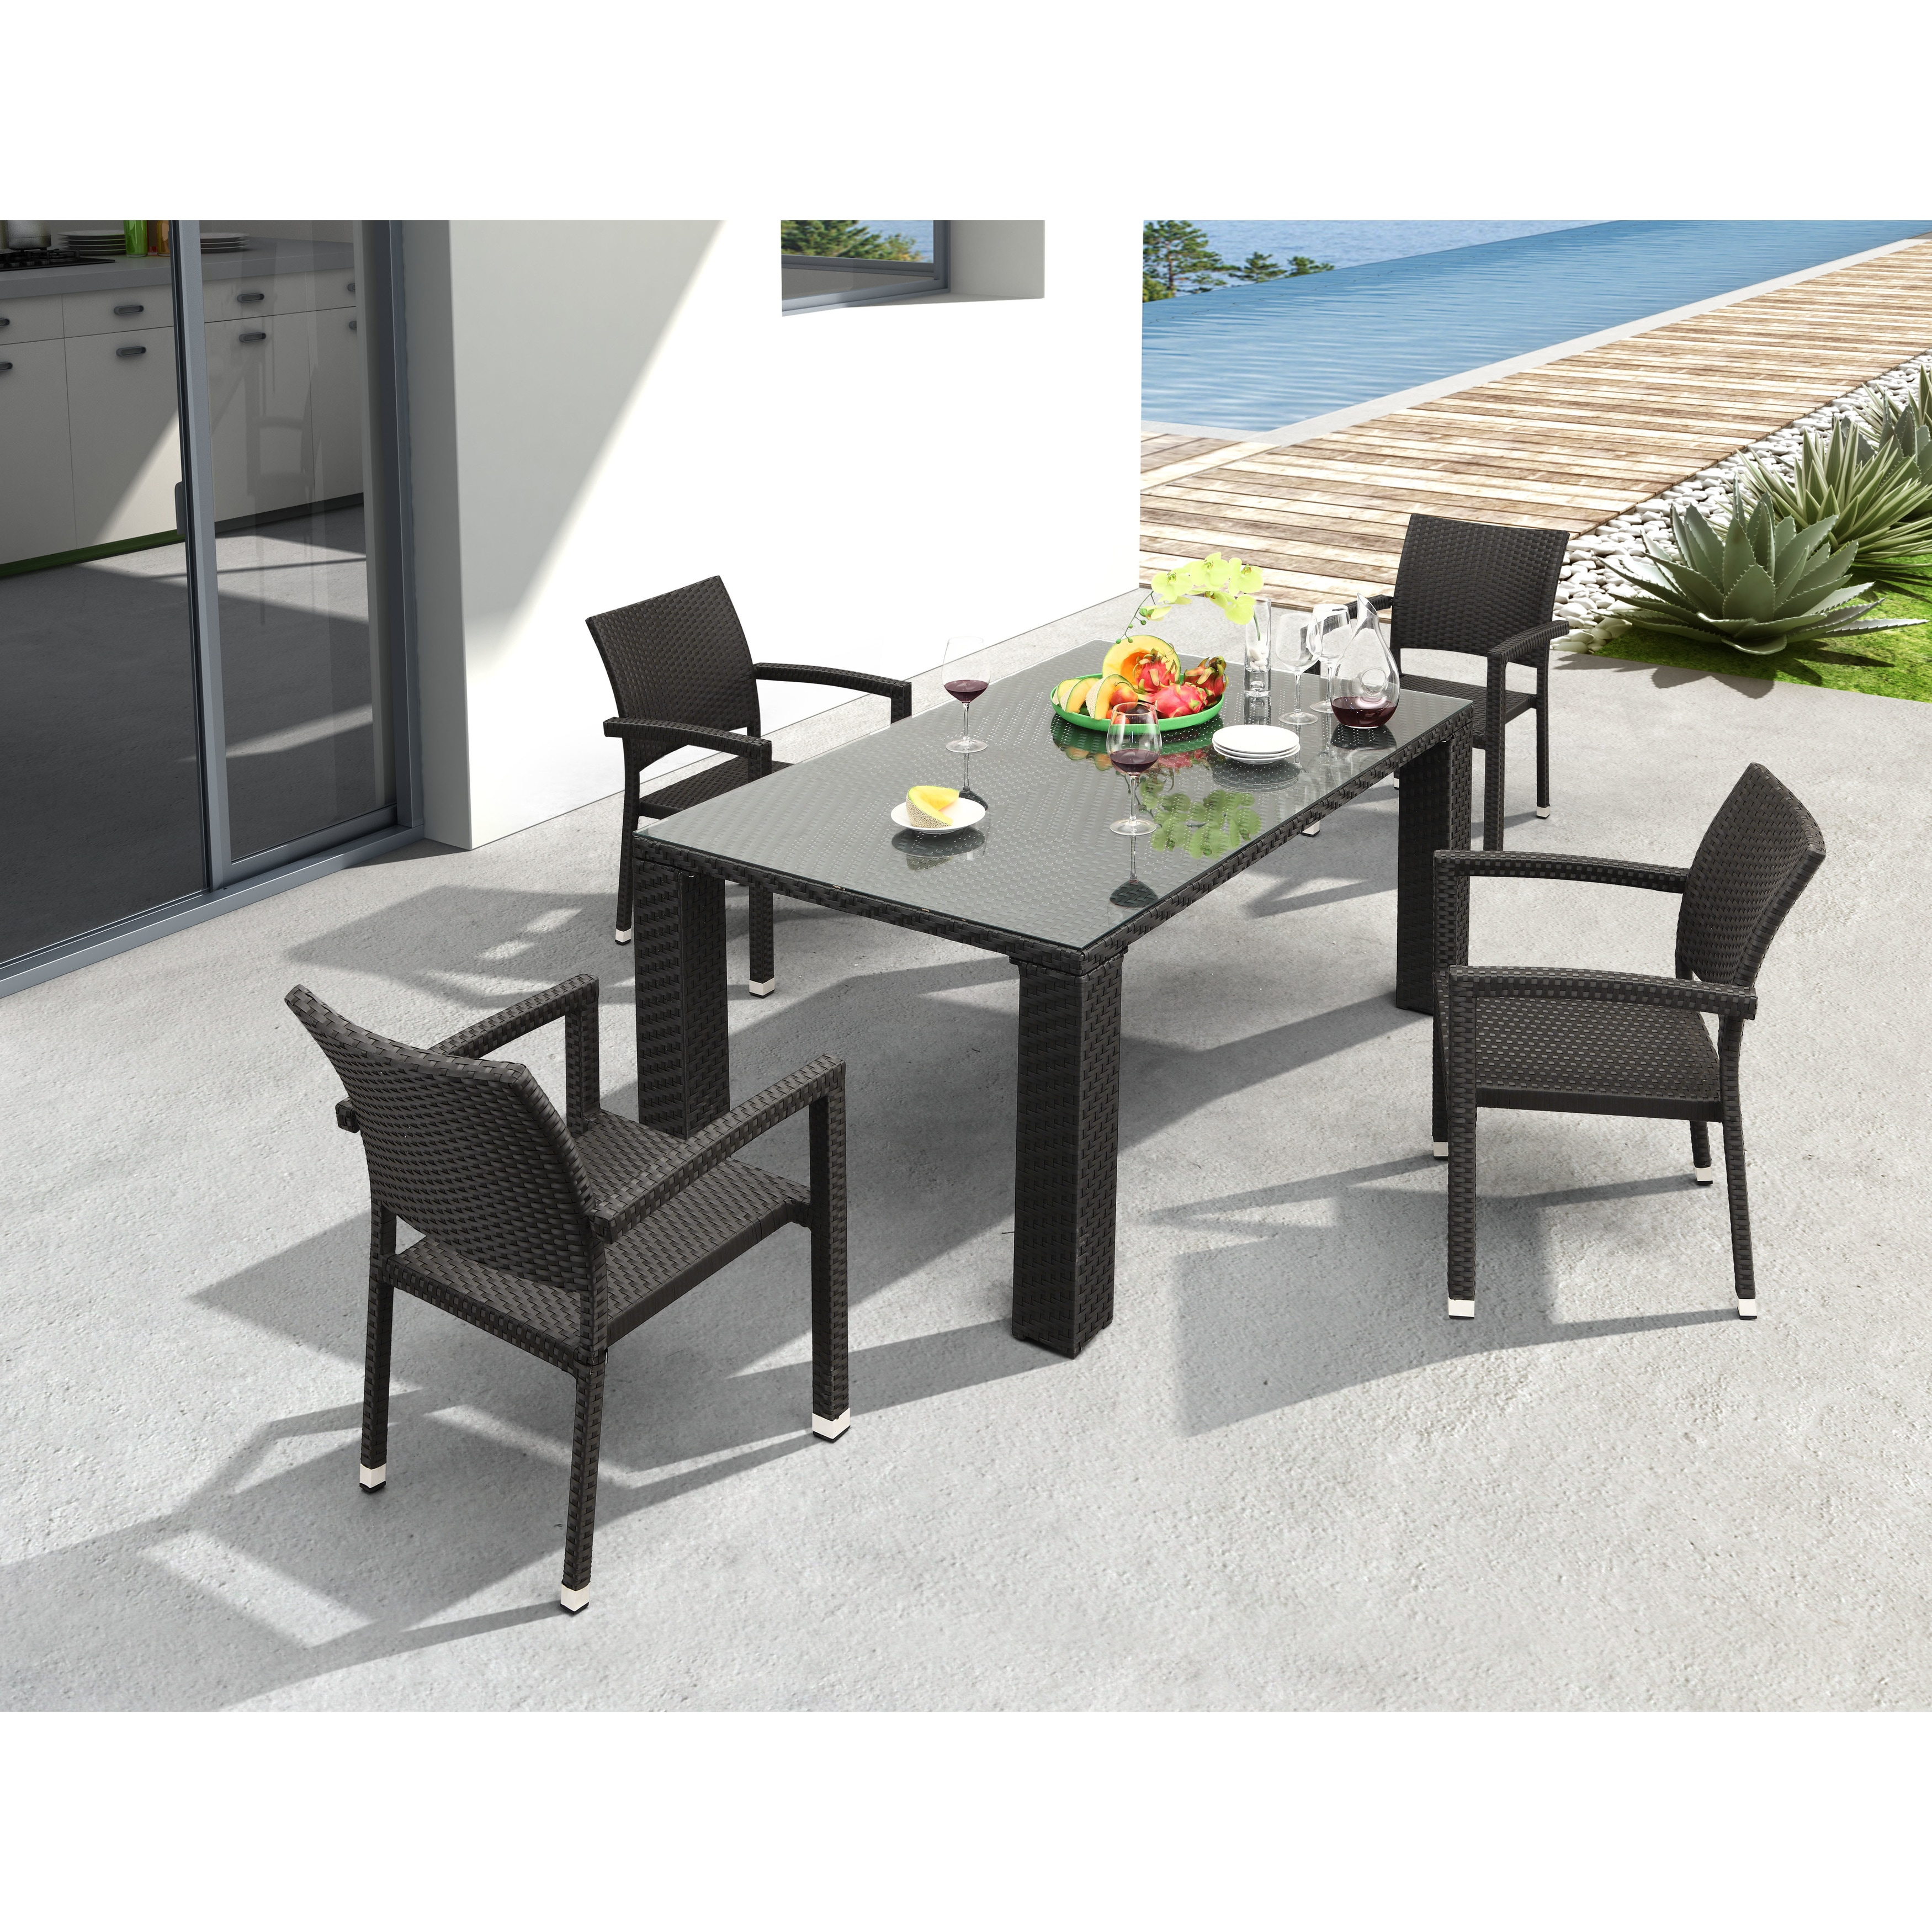 Havenside Home Umkumiut Indoor/ Outdoor Glass-top Table (Dimensions: 39.5 in. W x 63 in. L x 29 in. H. We)